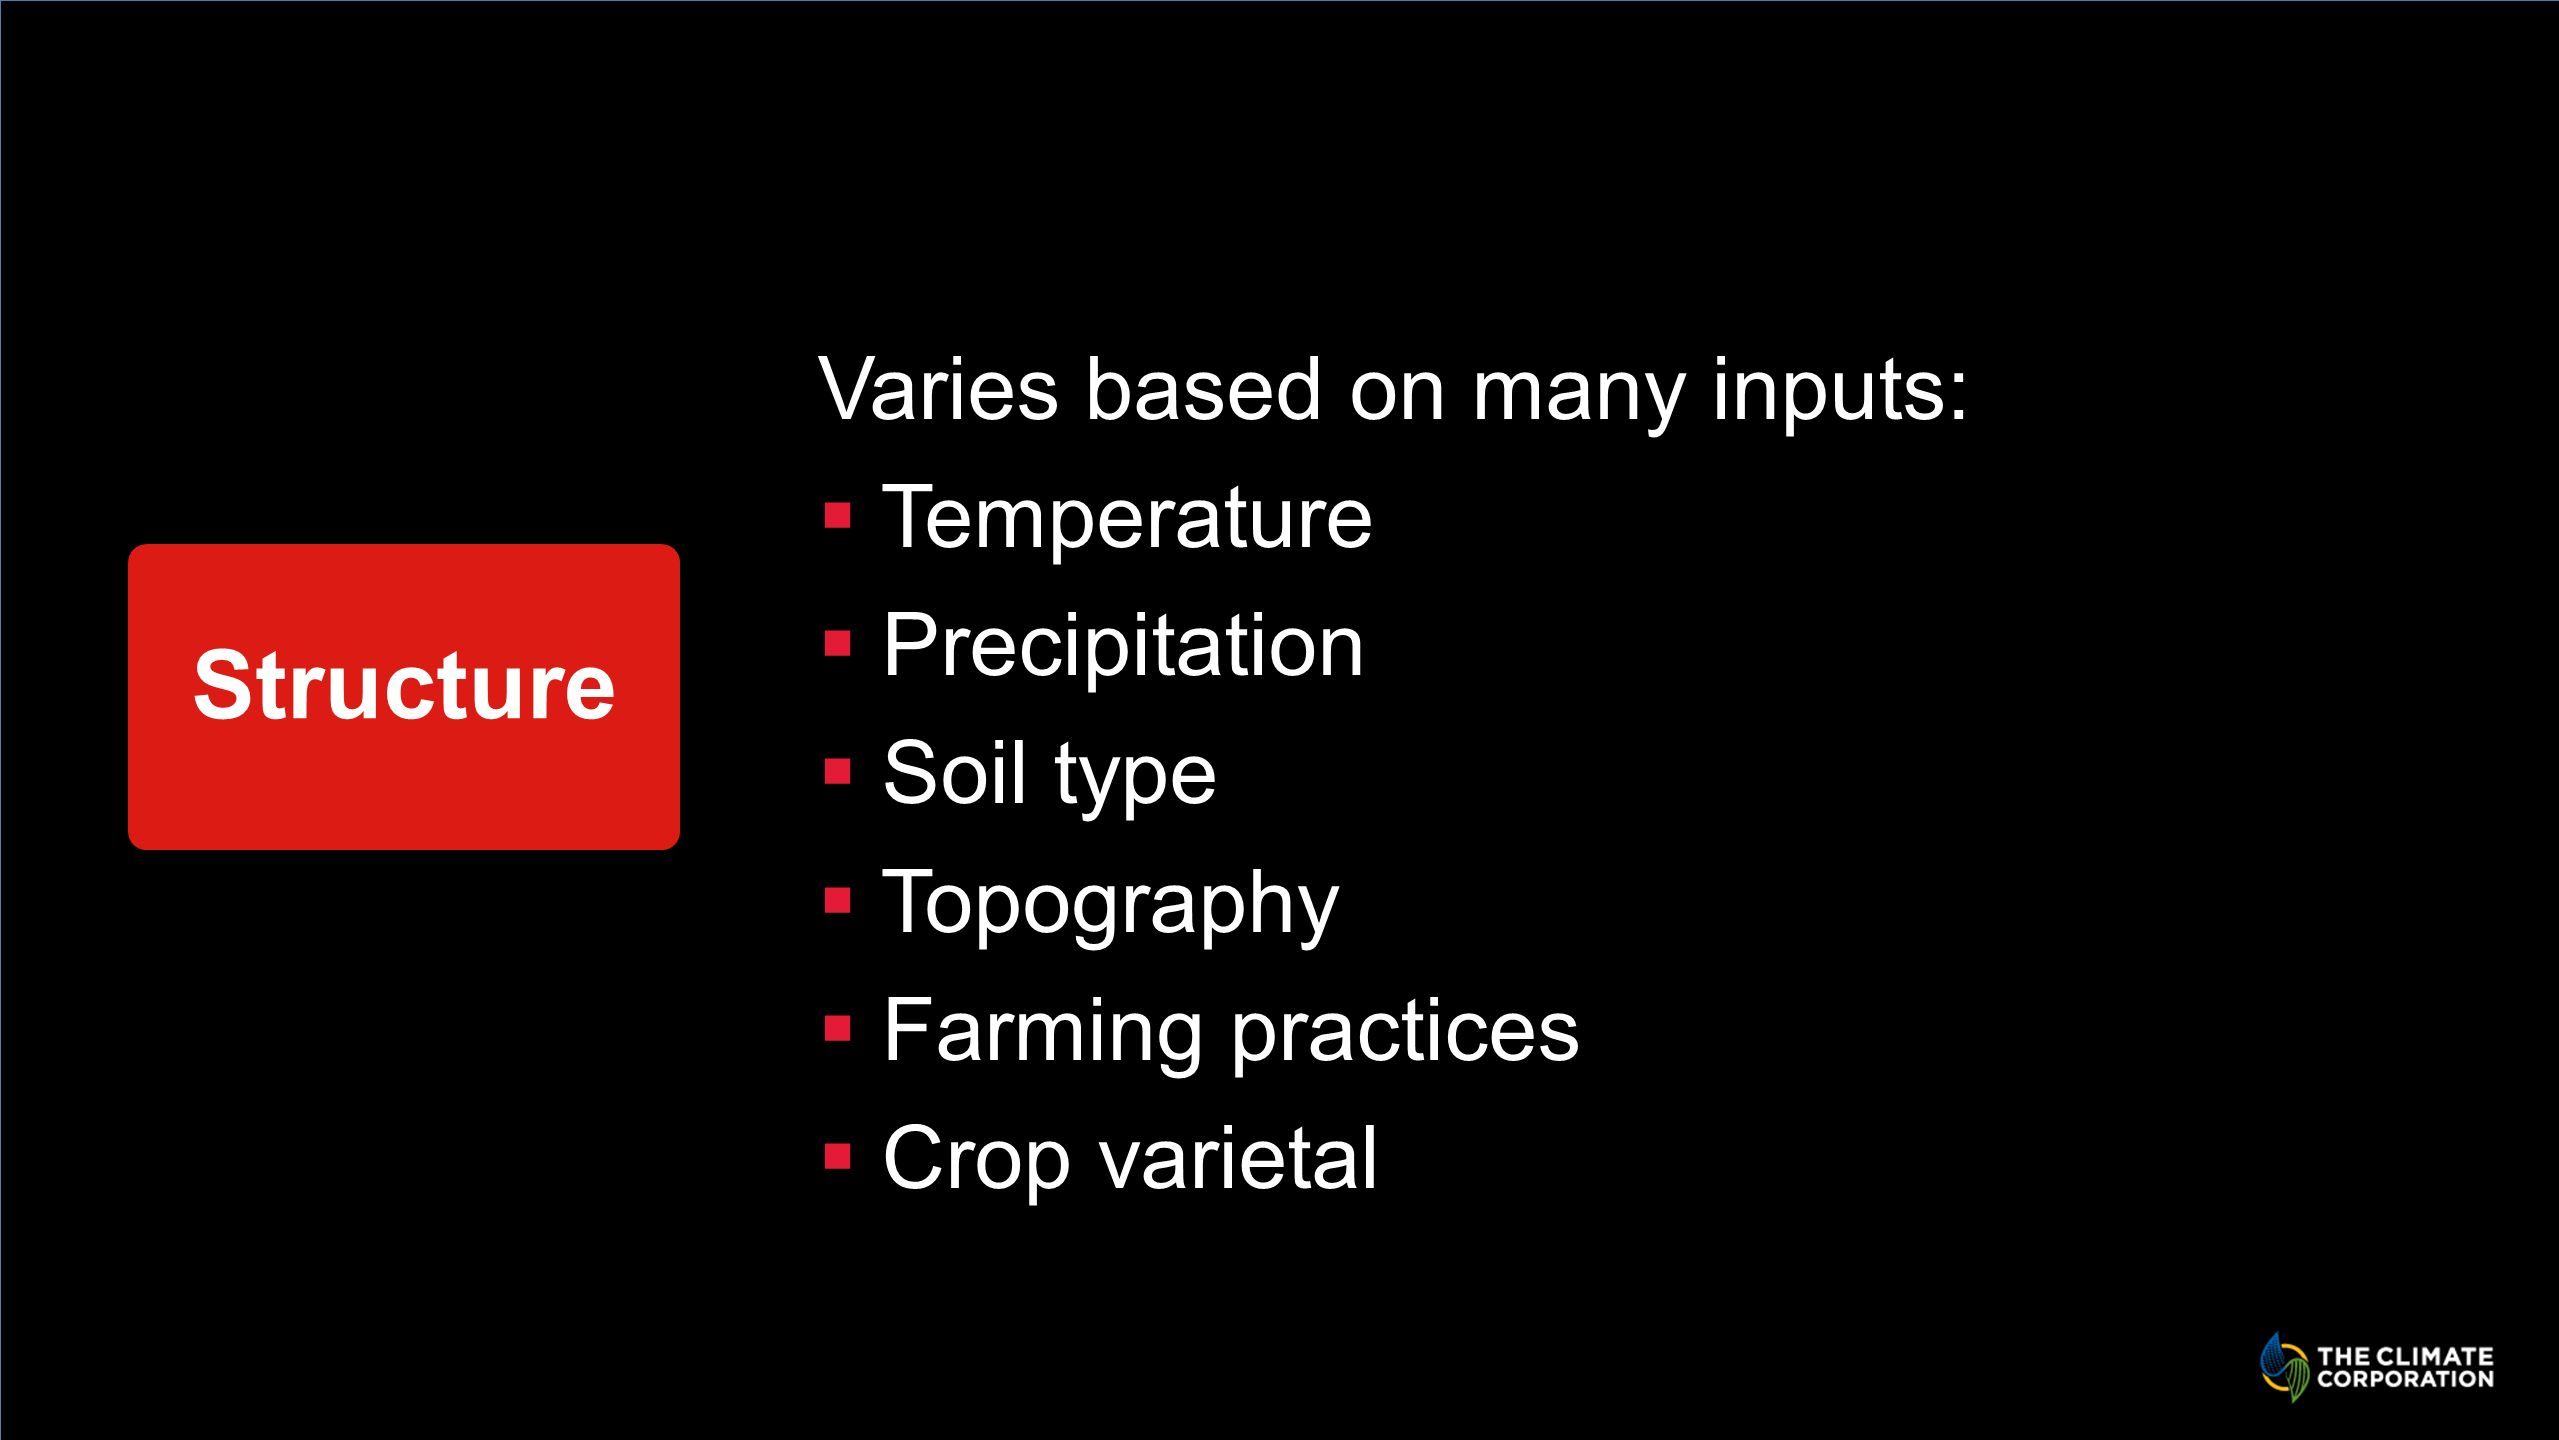 Structure Varies based on many inputs: Temperature Precipitation Soil type Topography Farming practices Crop varietal